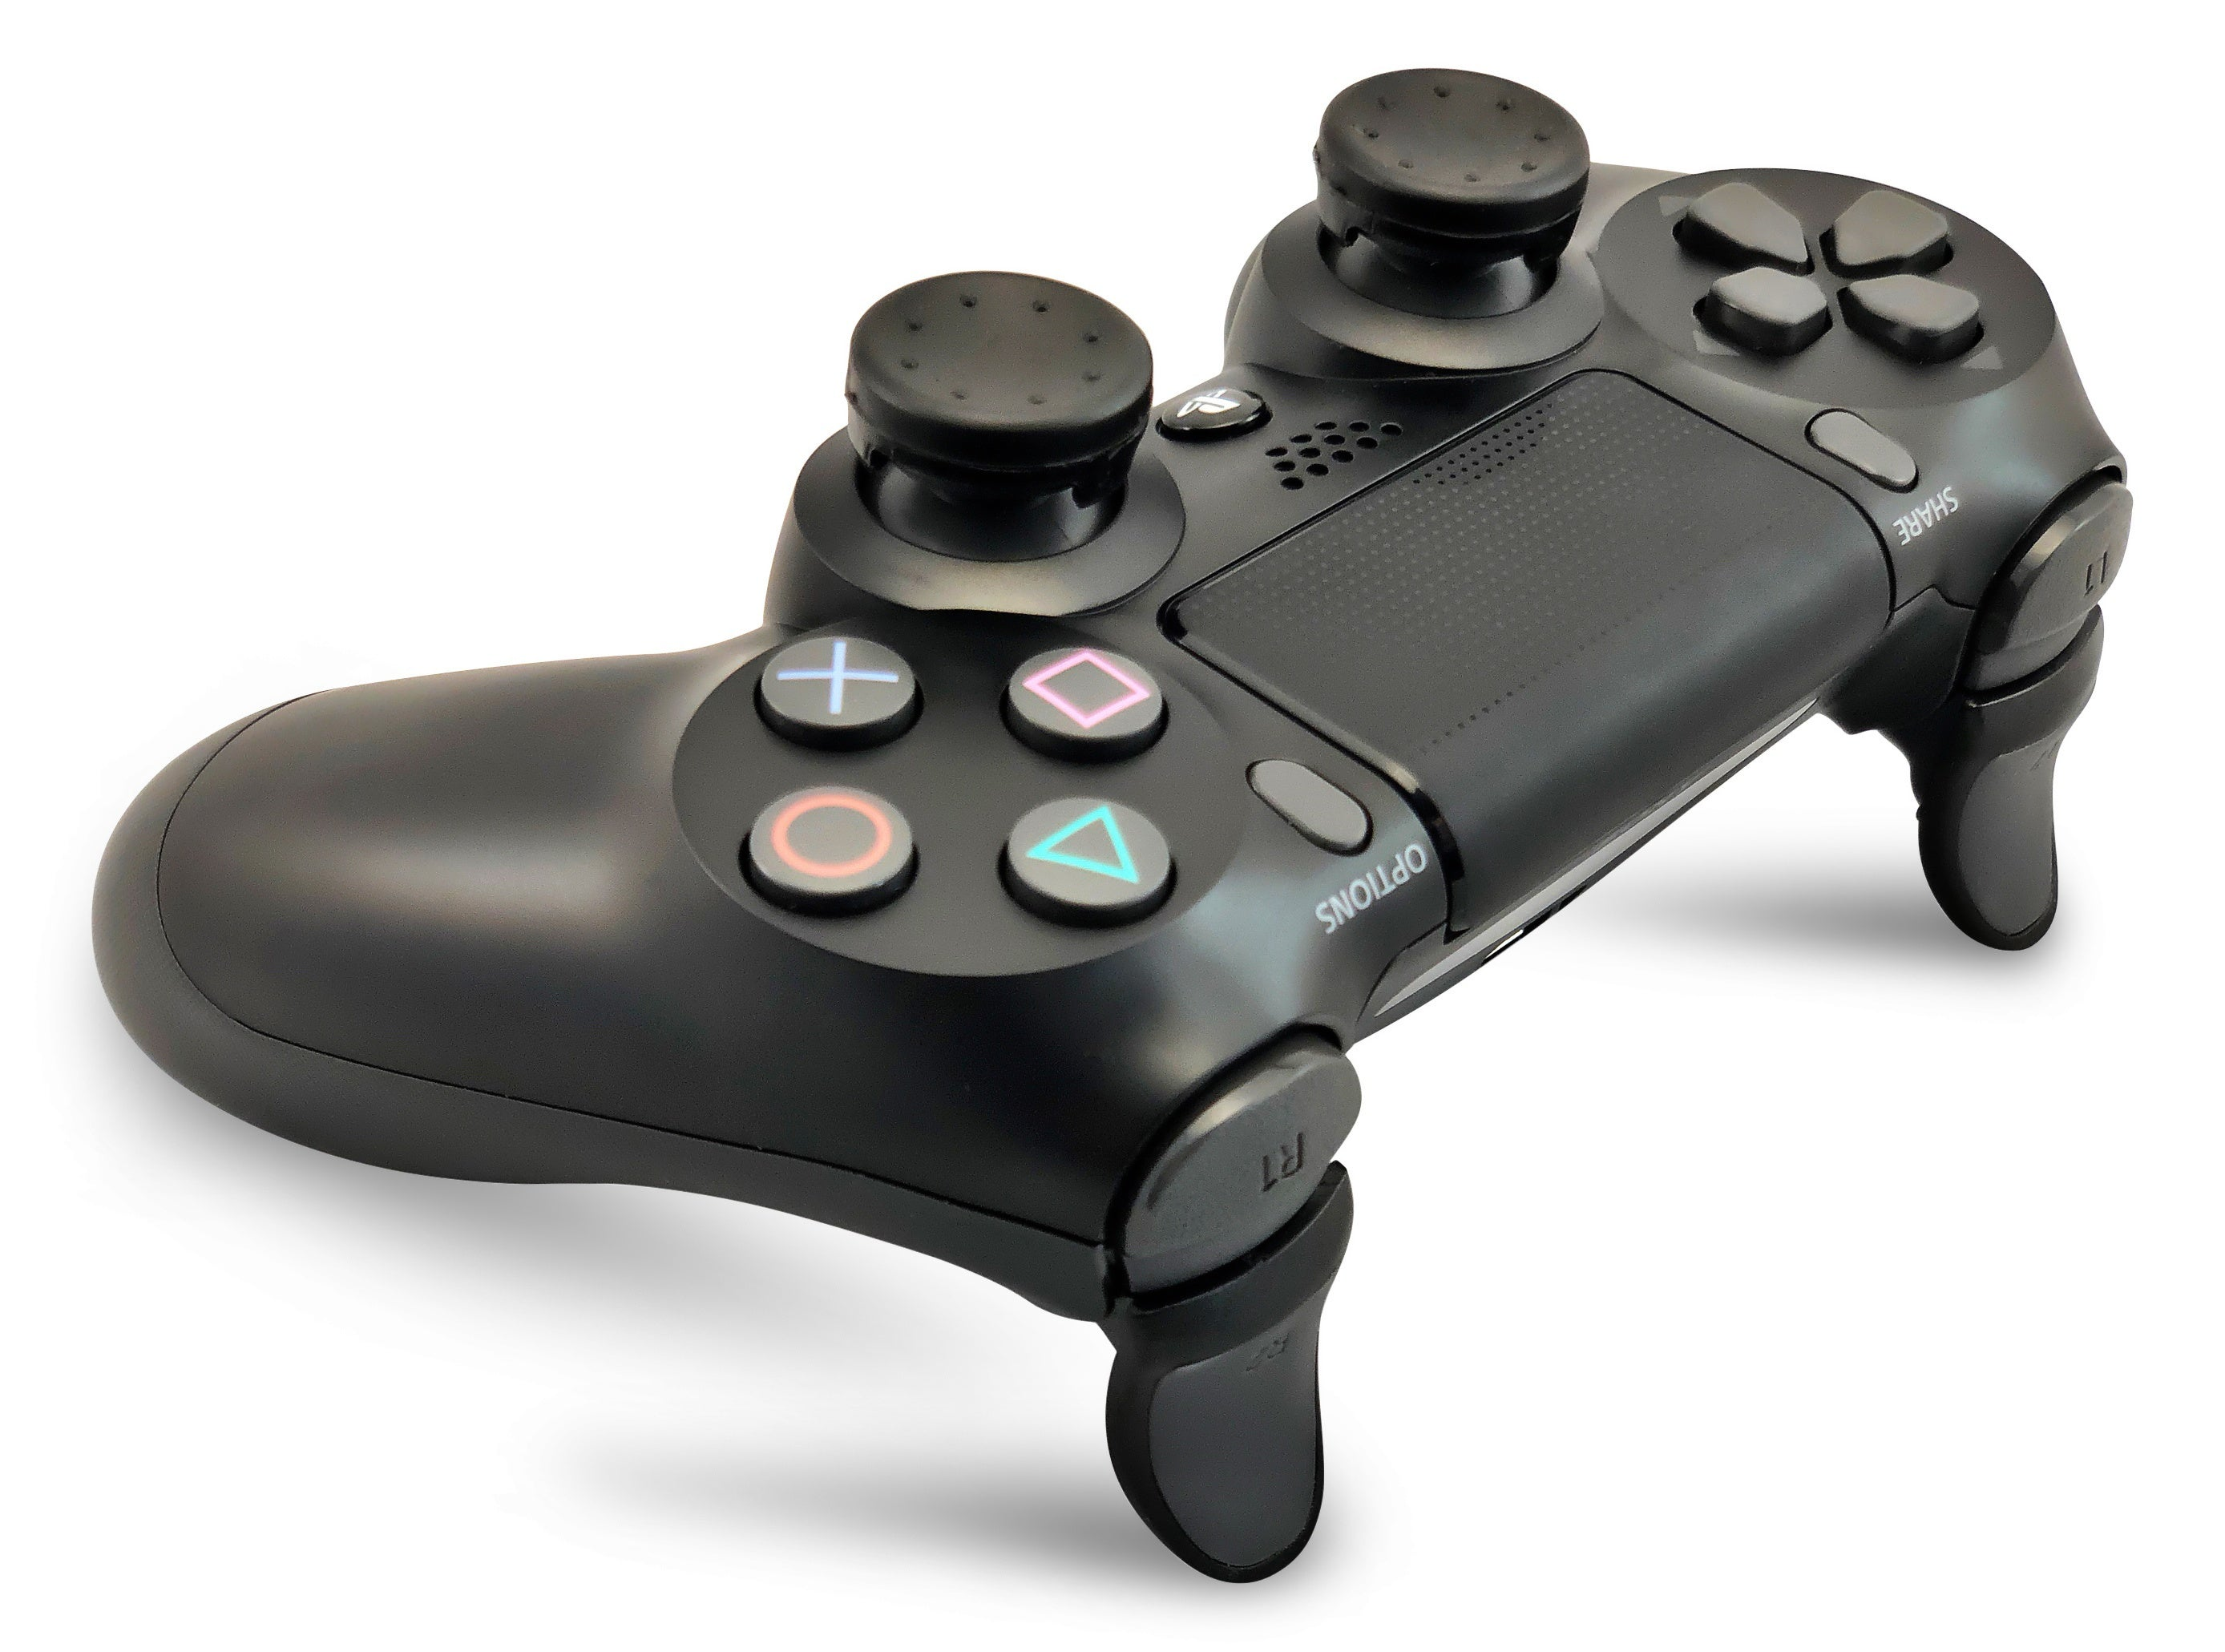 Weapons of Mass Destruction - PS4 Performance Triggers and Precision Thumbsticks - 2 Short Stem Sticks - Black